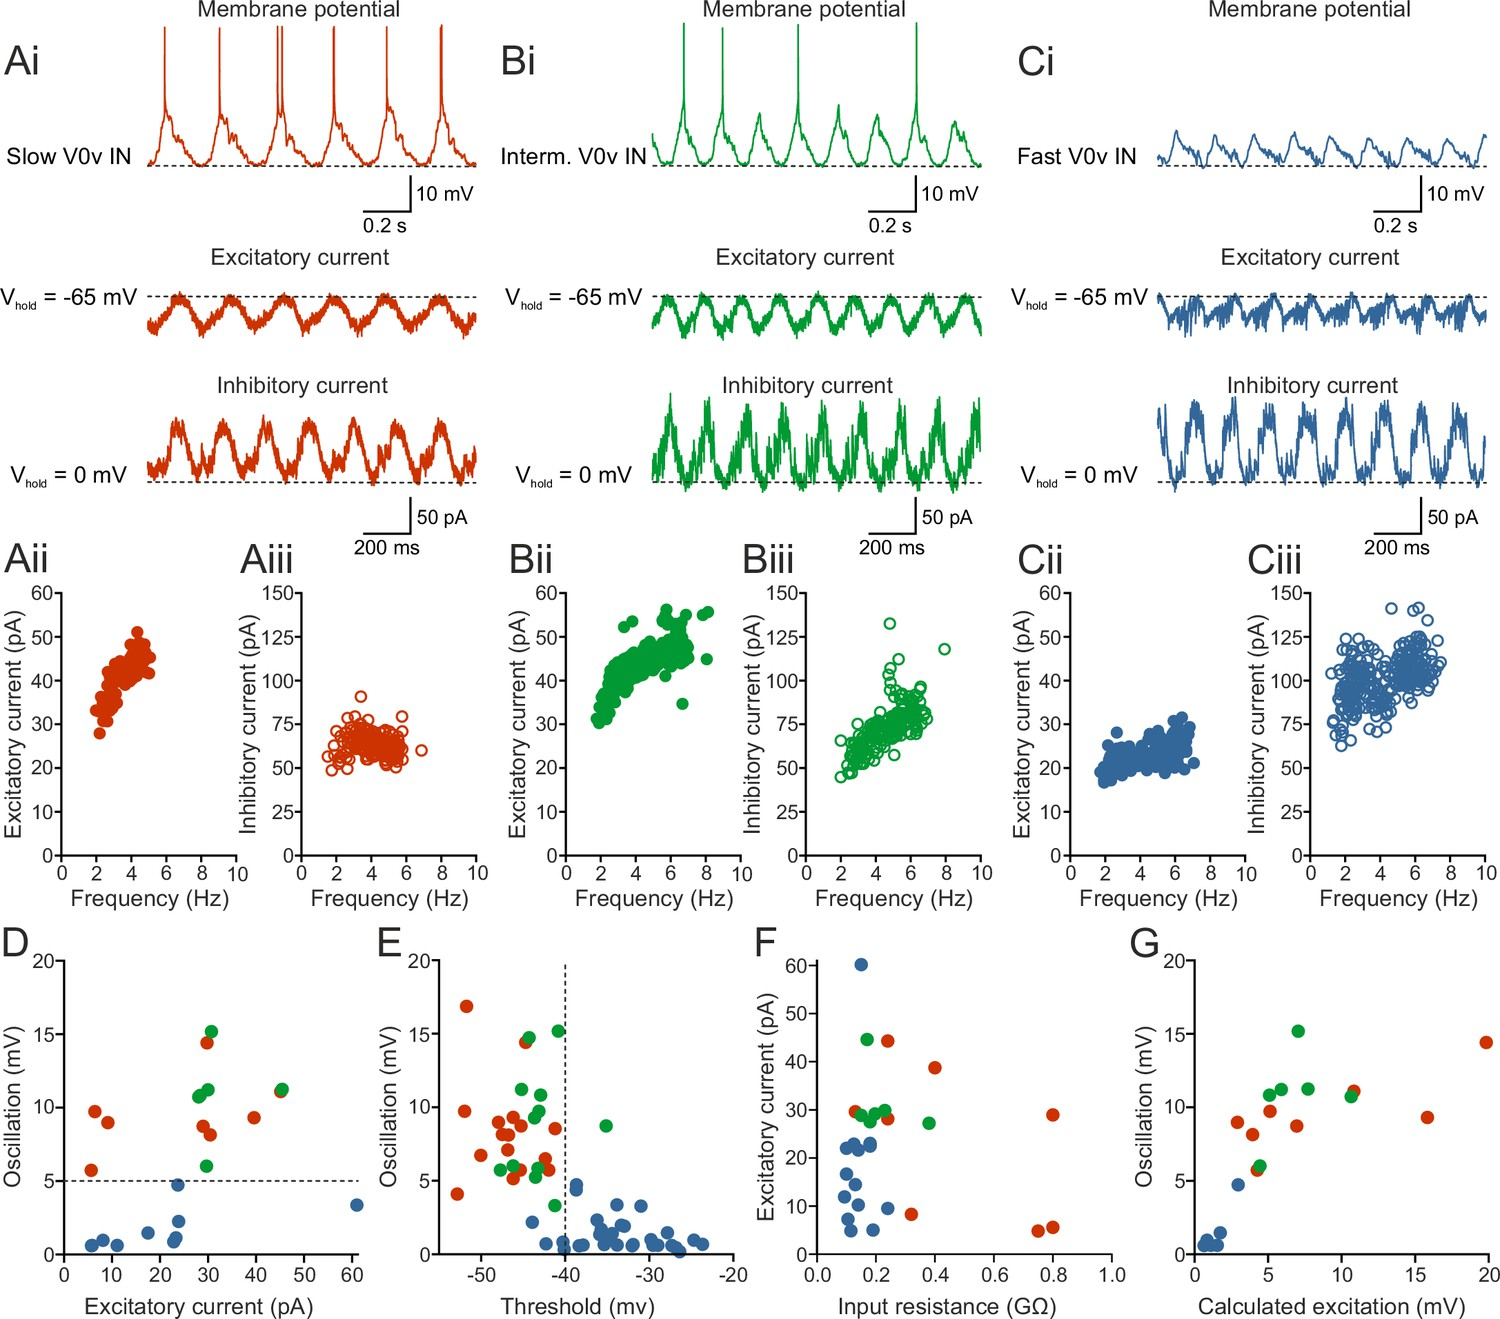 Functional diversity of excitatory commissural interneurons